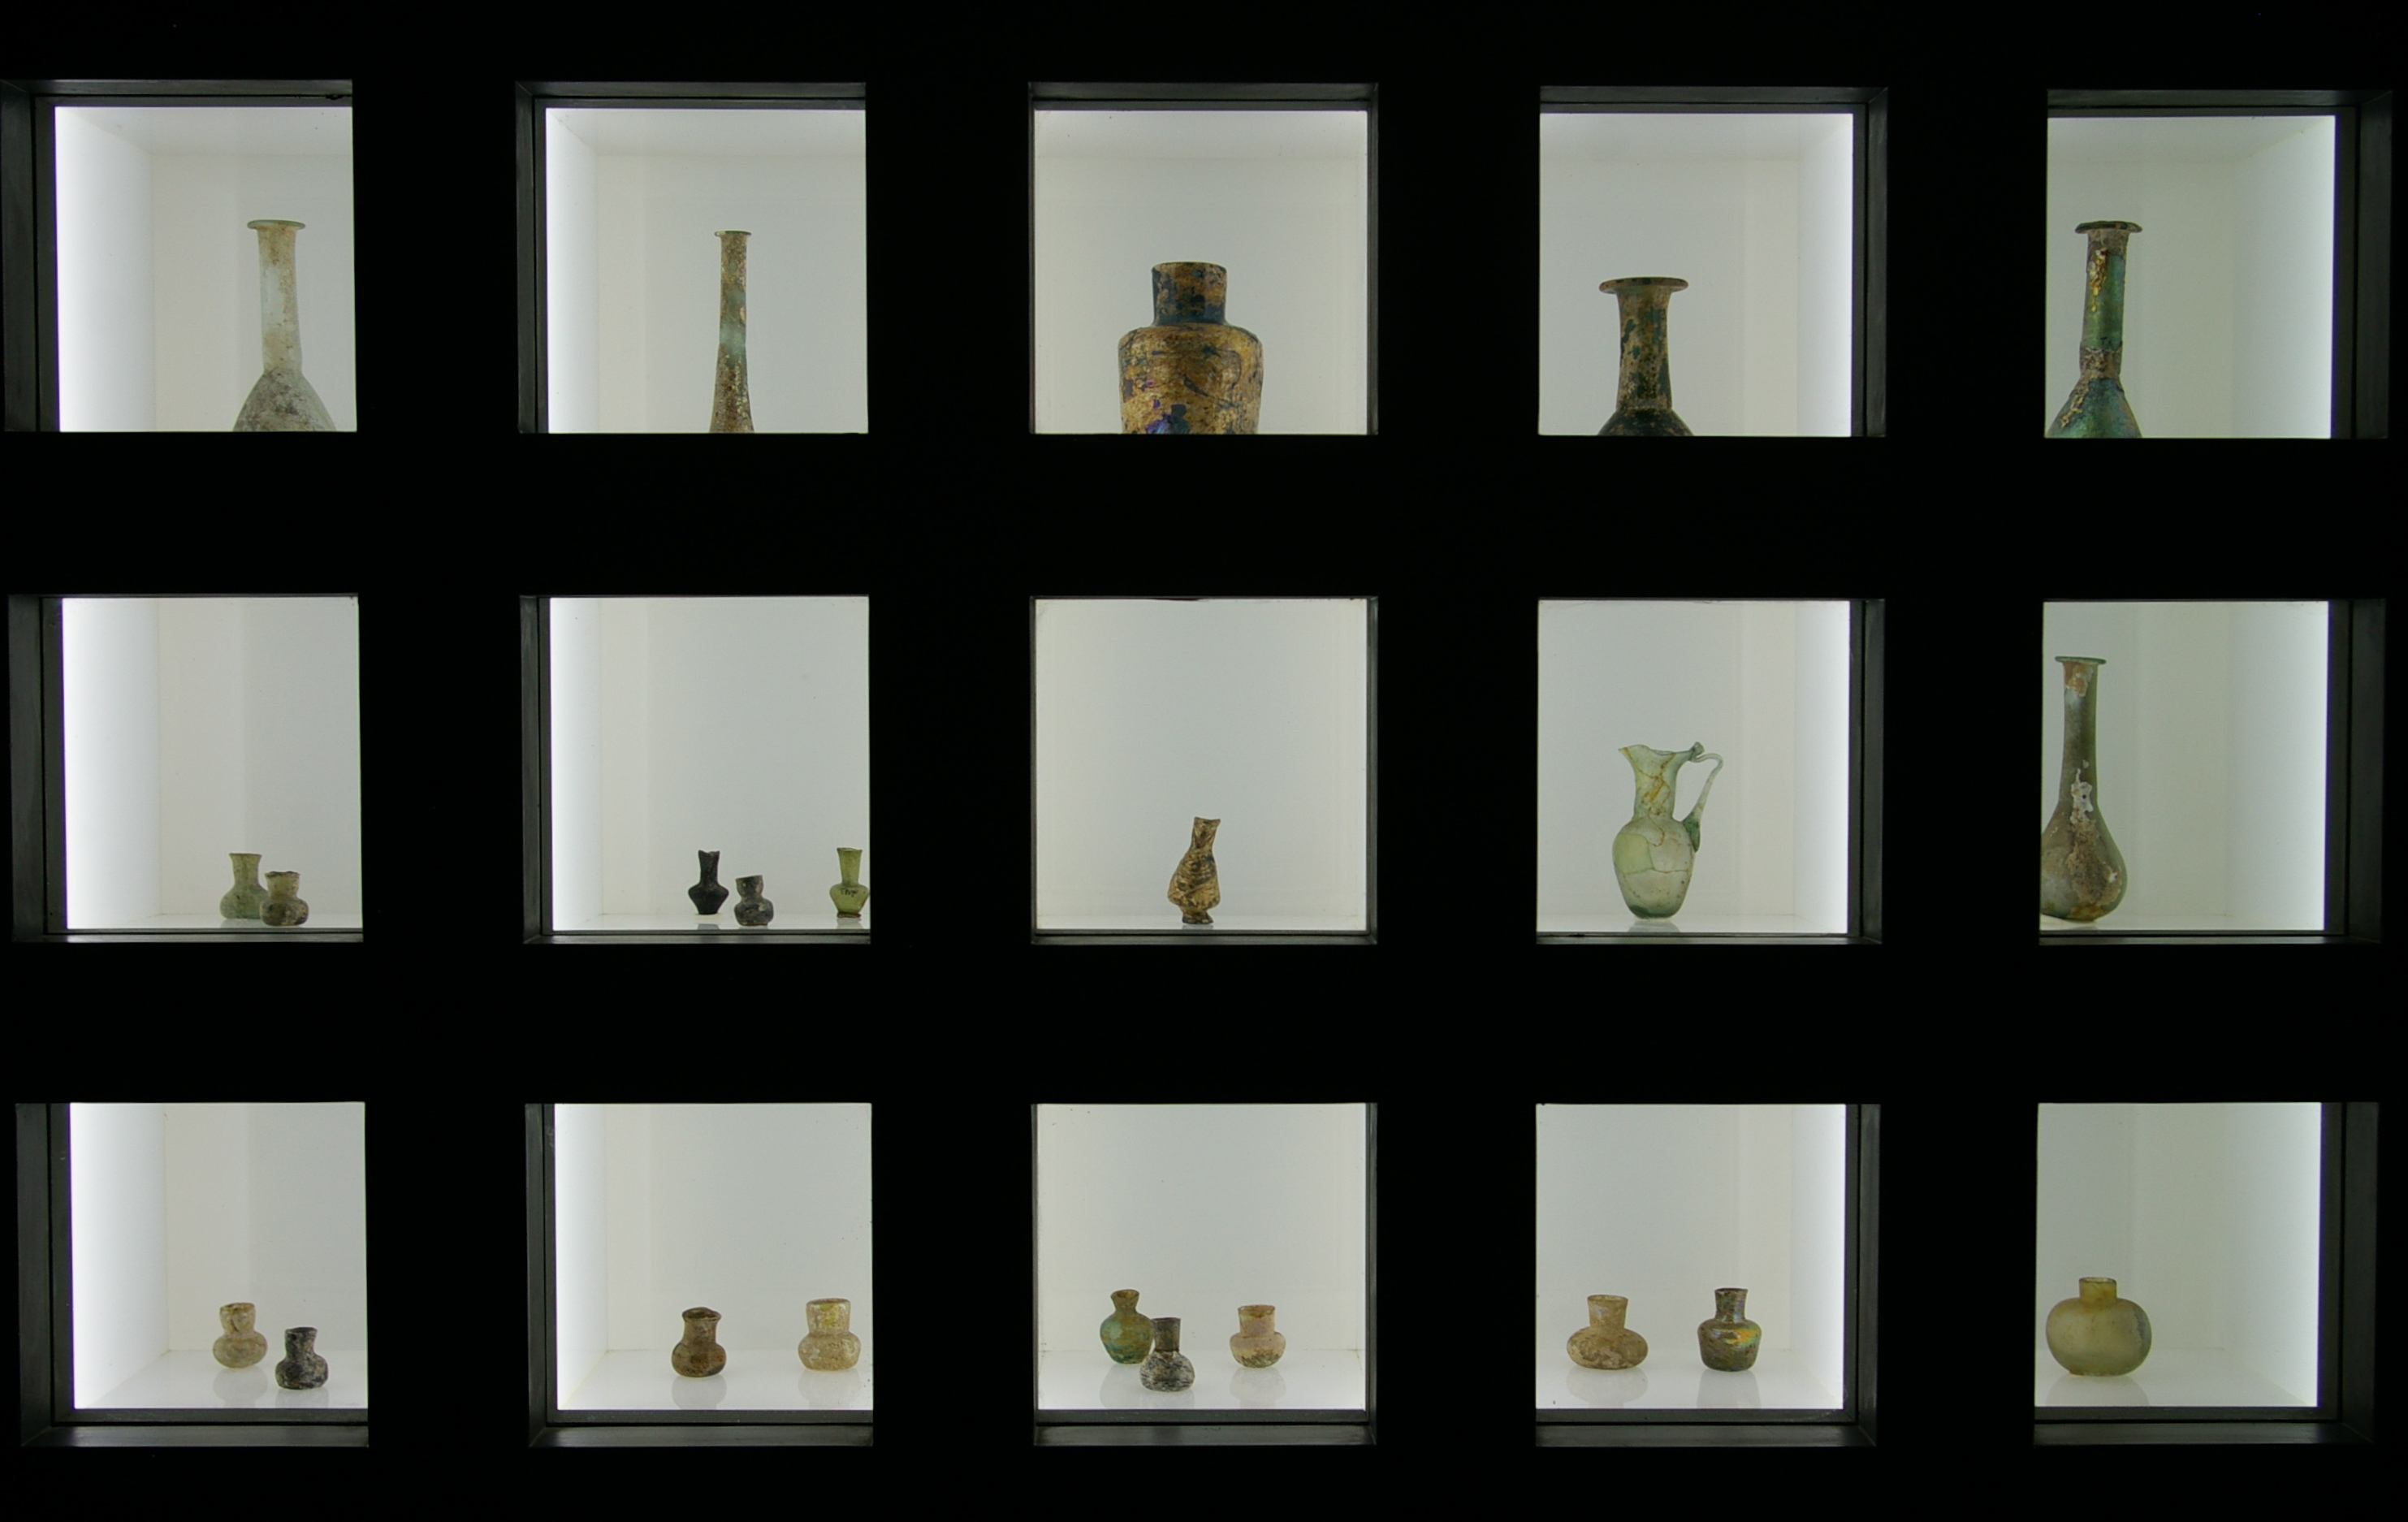 Glassware display